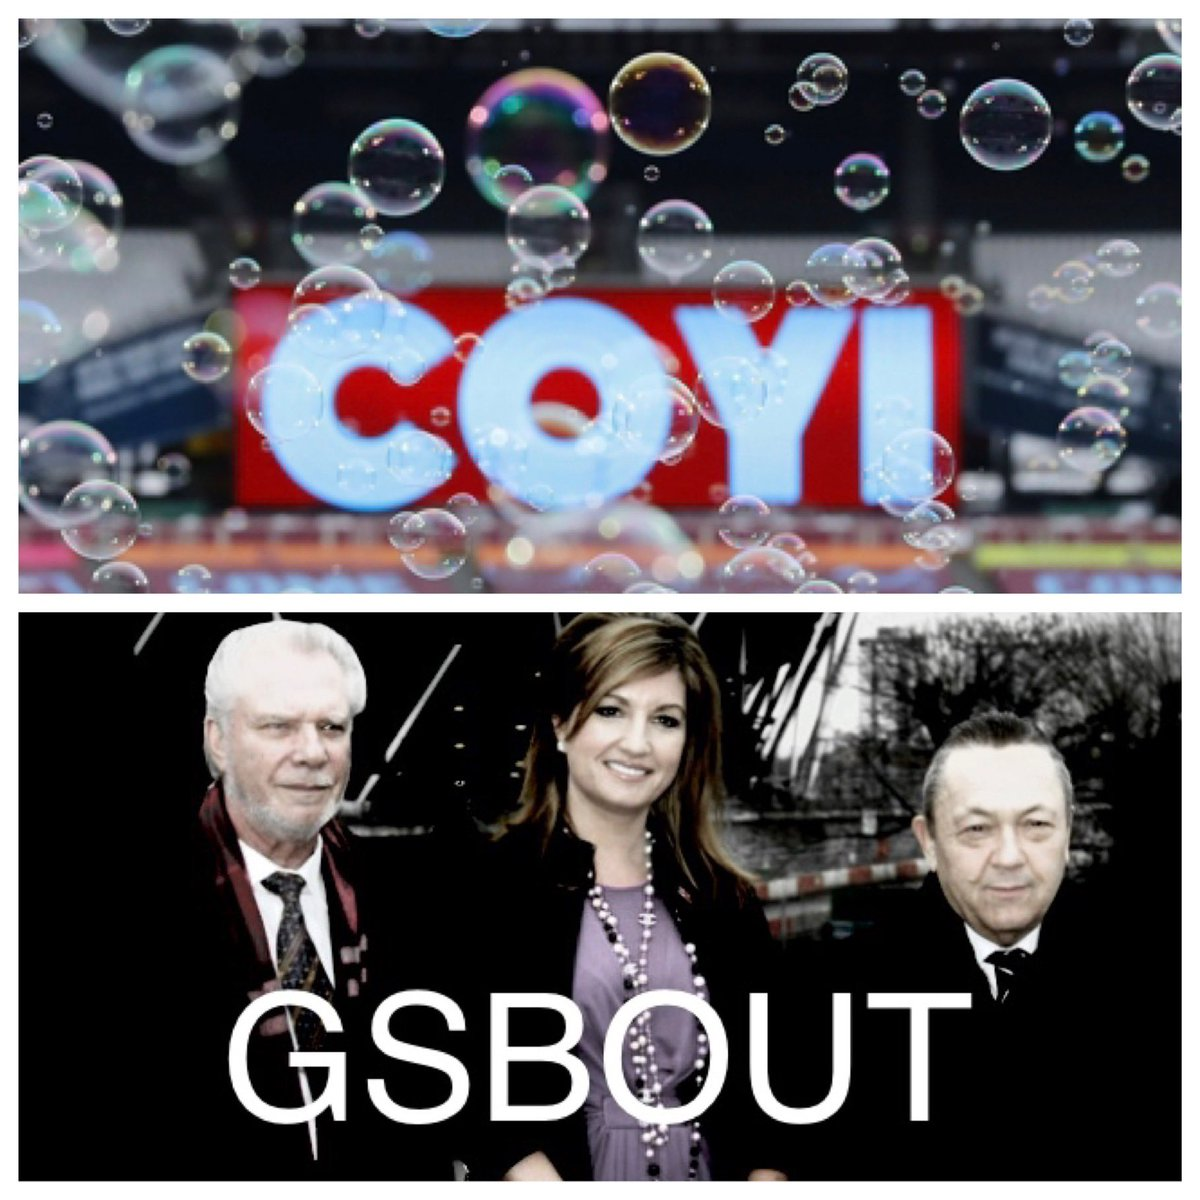 #COYI #GSBOUT